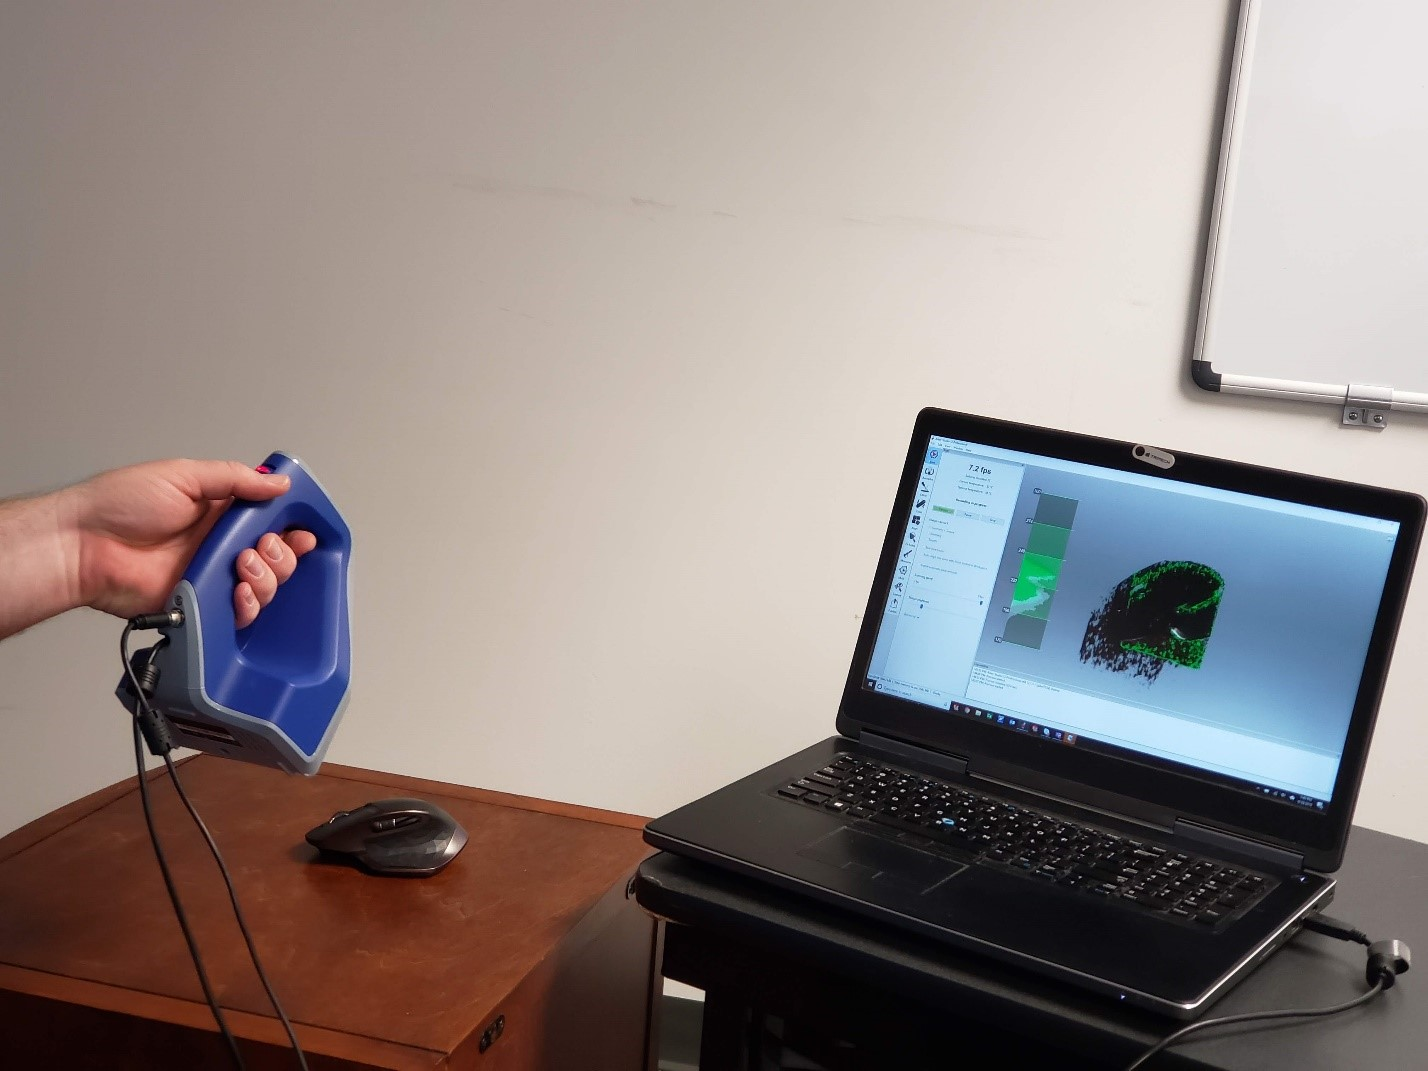 Using the Artec Space Spider to 3D scan a mouse